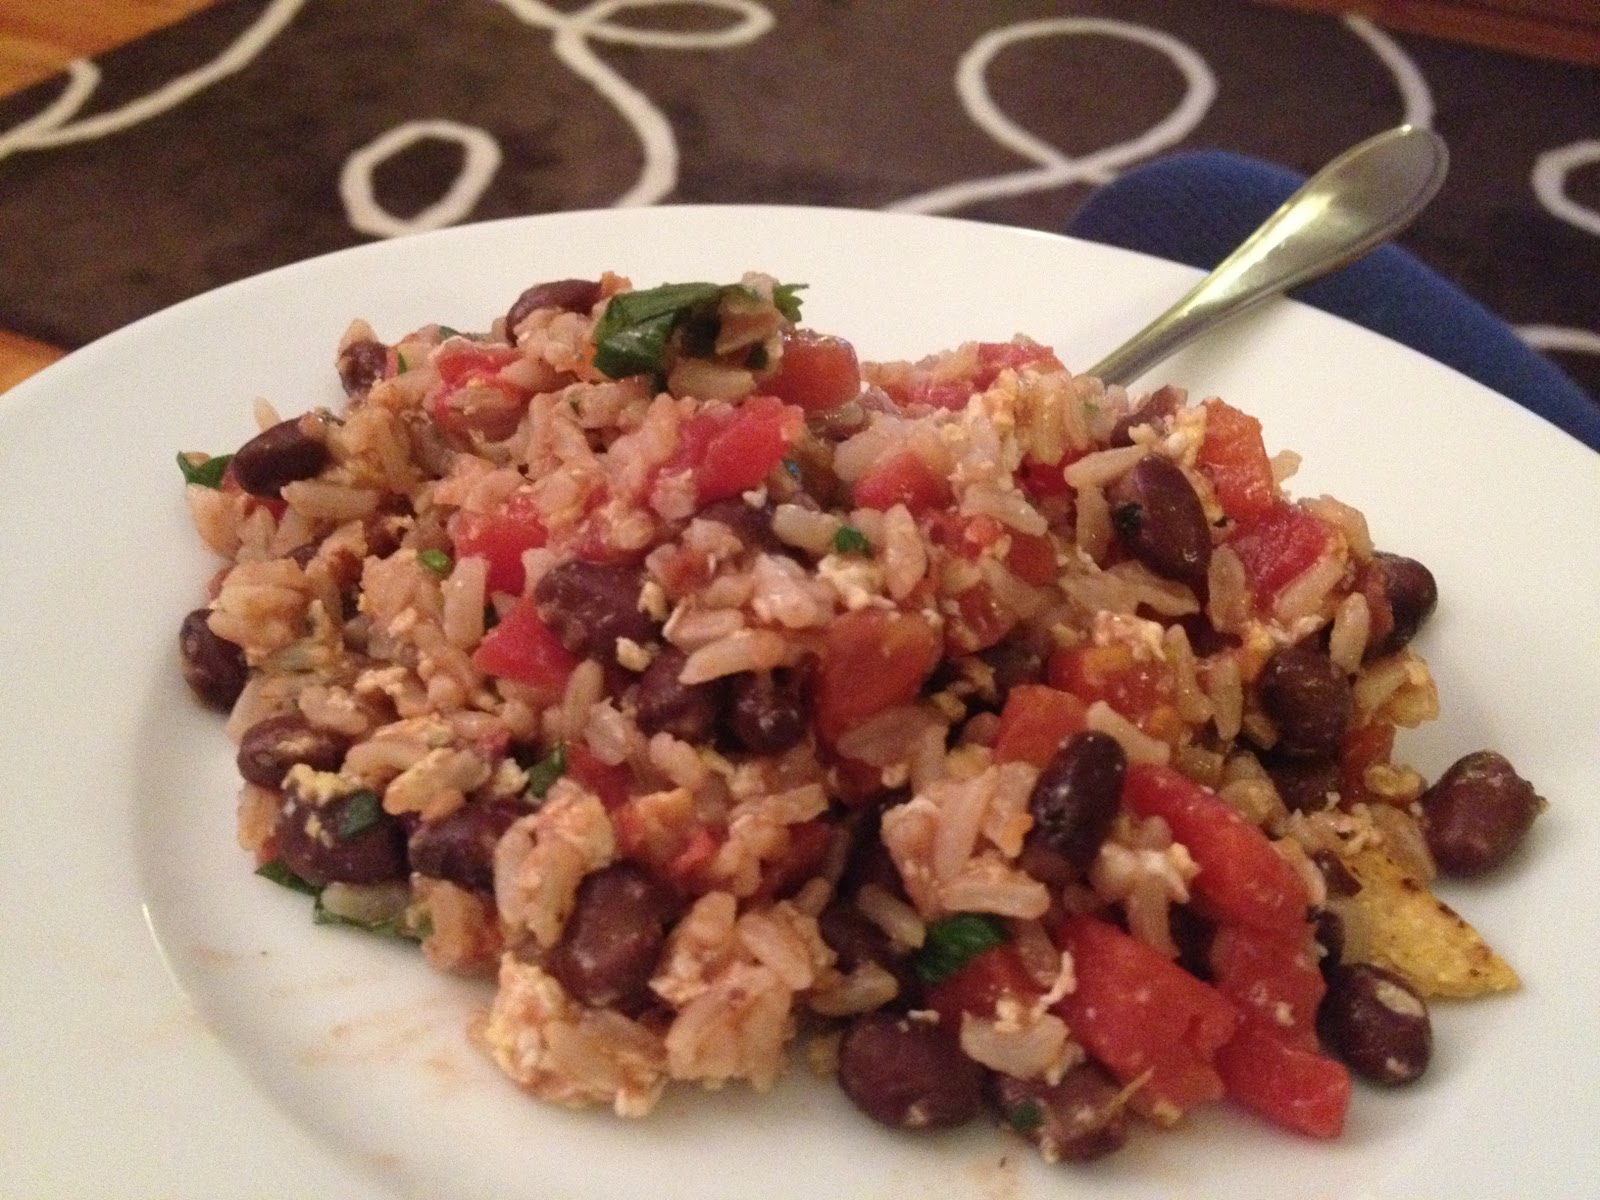 Http Ruminationsonfood Blogspot Com 2012 01 Southwestern Fried Rice And Joys Of Html